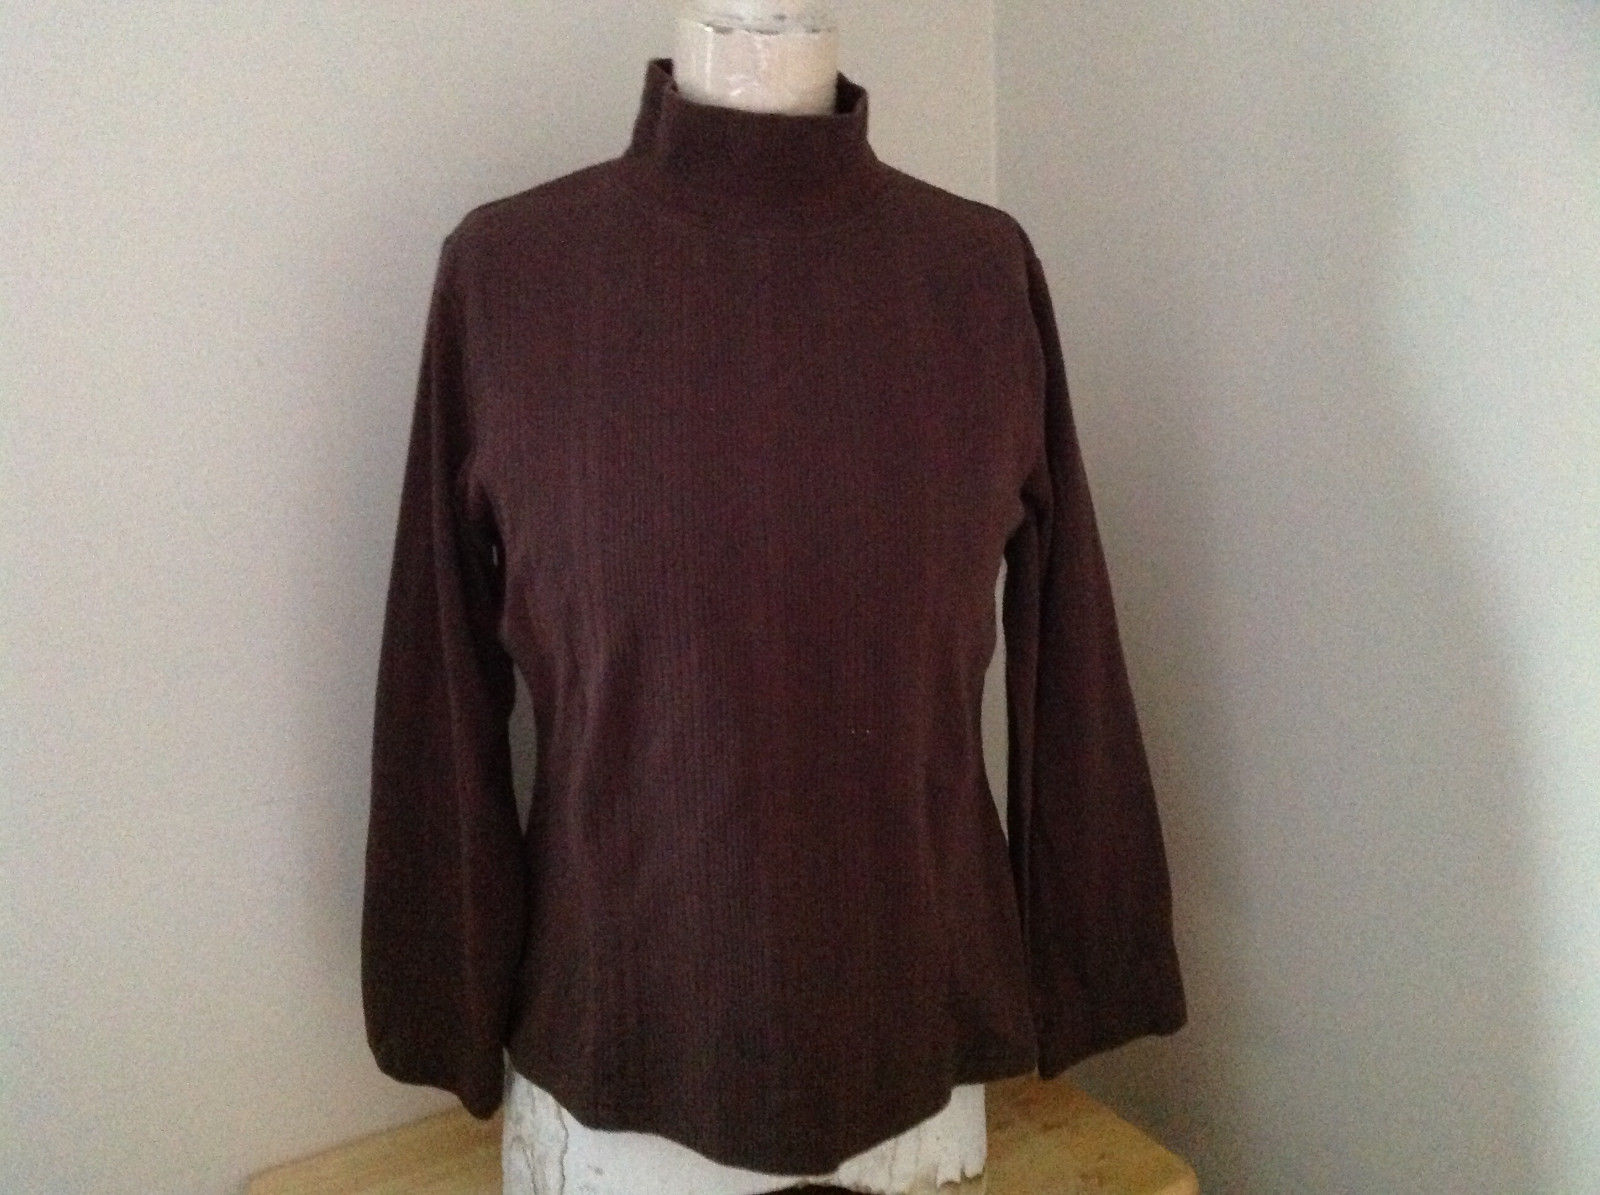 Dressbarn Brown Turtleneck Long Sleeve Sweater Made in Lesotho Size Large